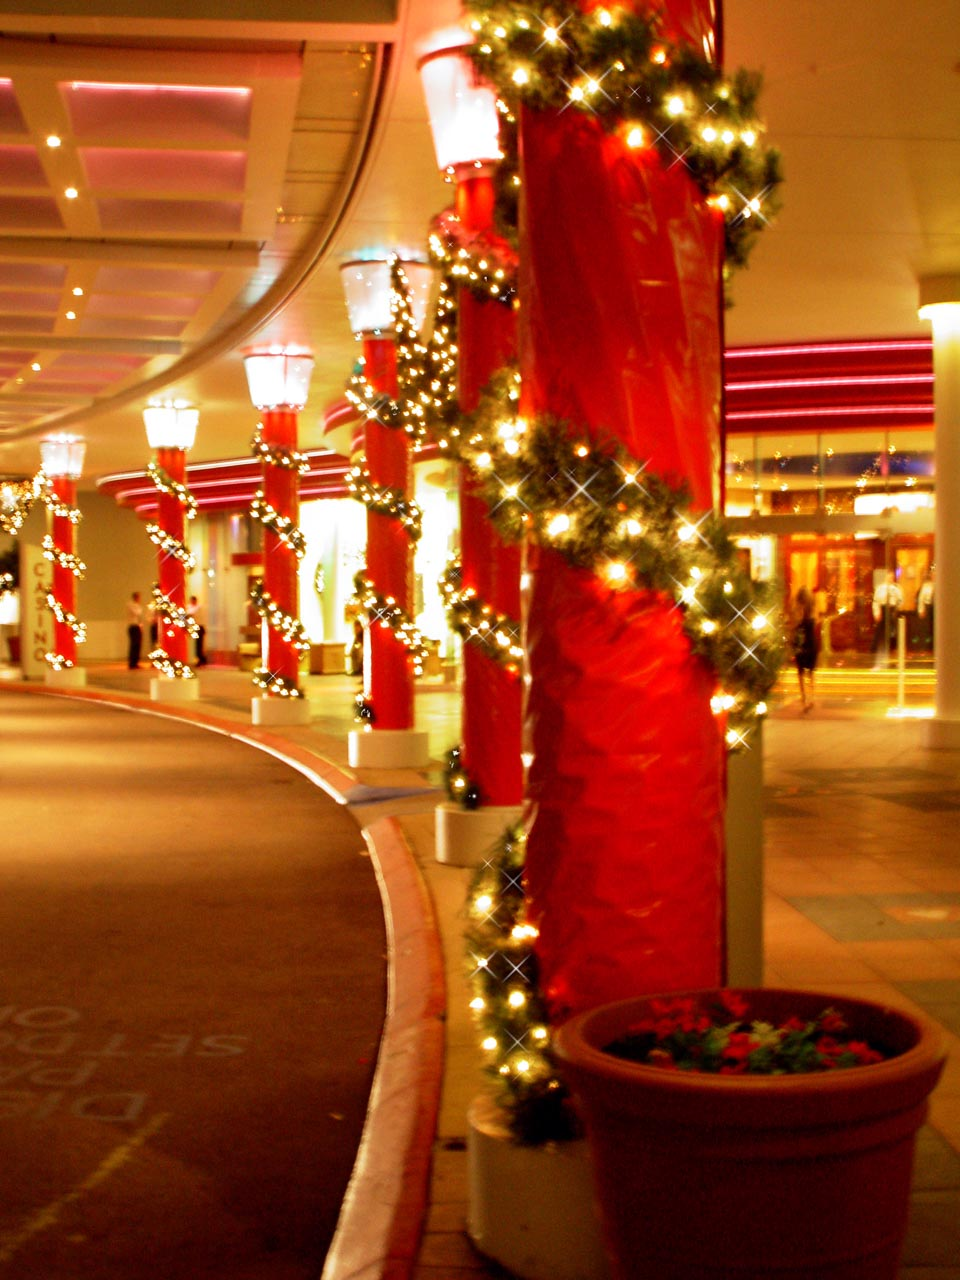 Burswood Casino Entry 2.jpg